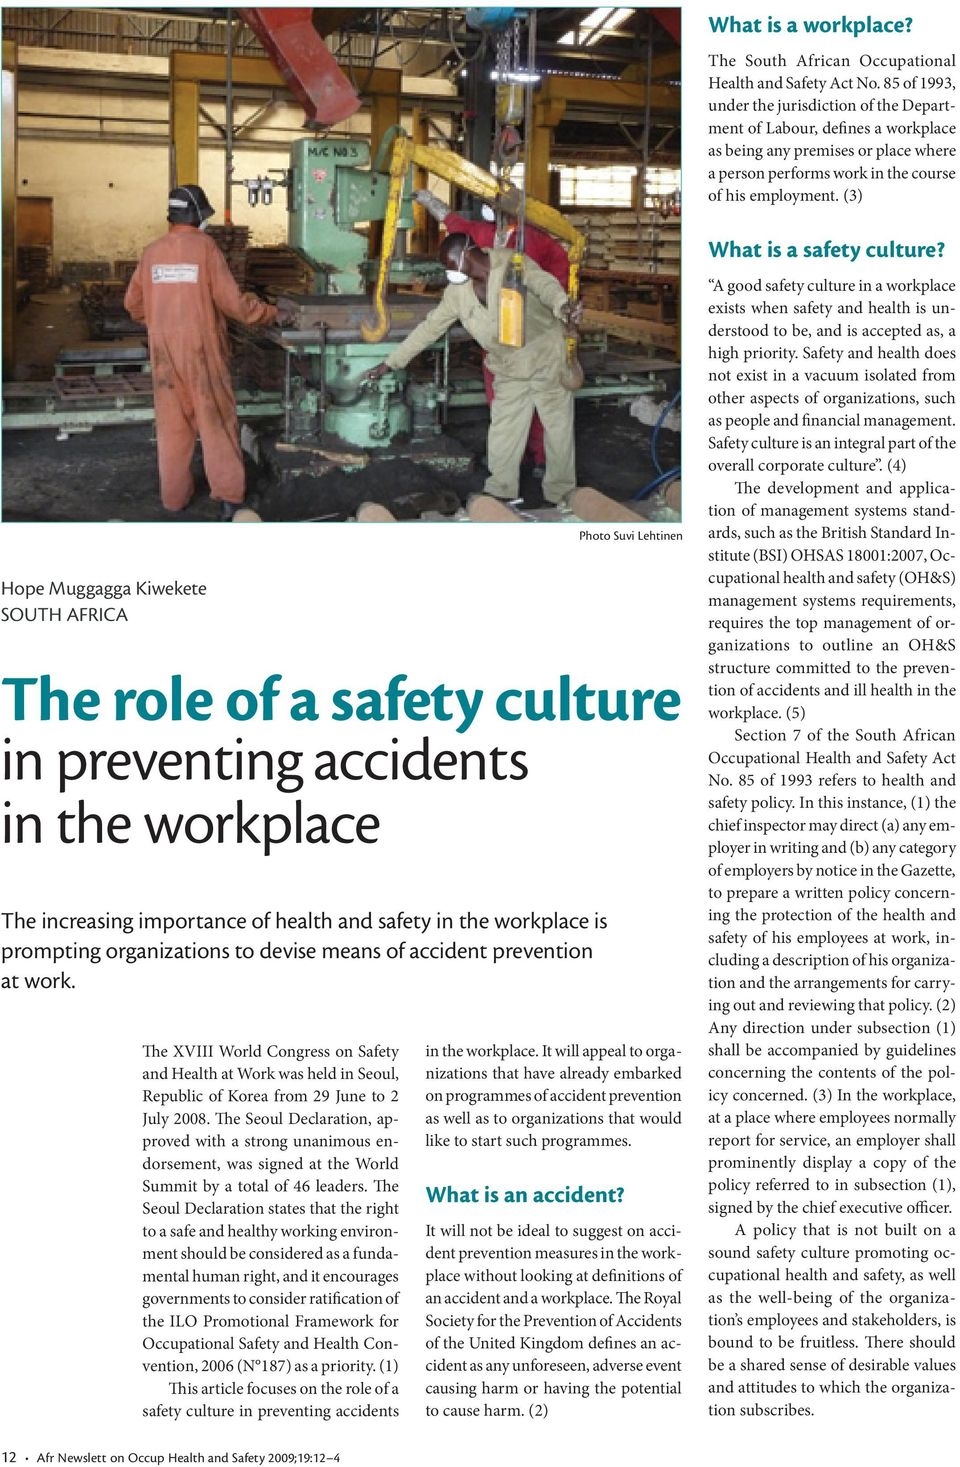 (3) Hope Muggagga Kiwekete SOUTH AFRICA The role of a safety culture in preventing accidents in the workplace The increasing importance of health and safety in the workplace is prompting